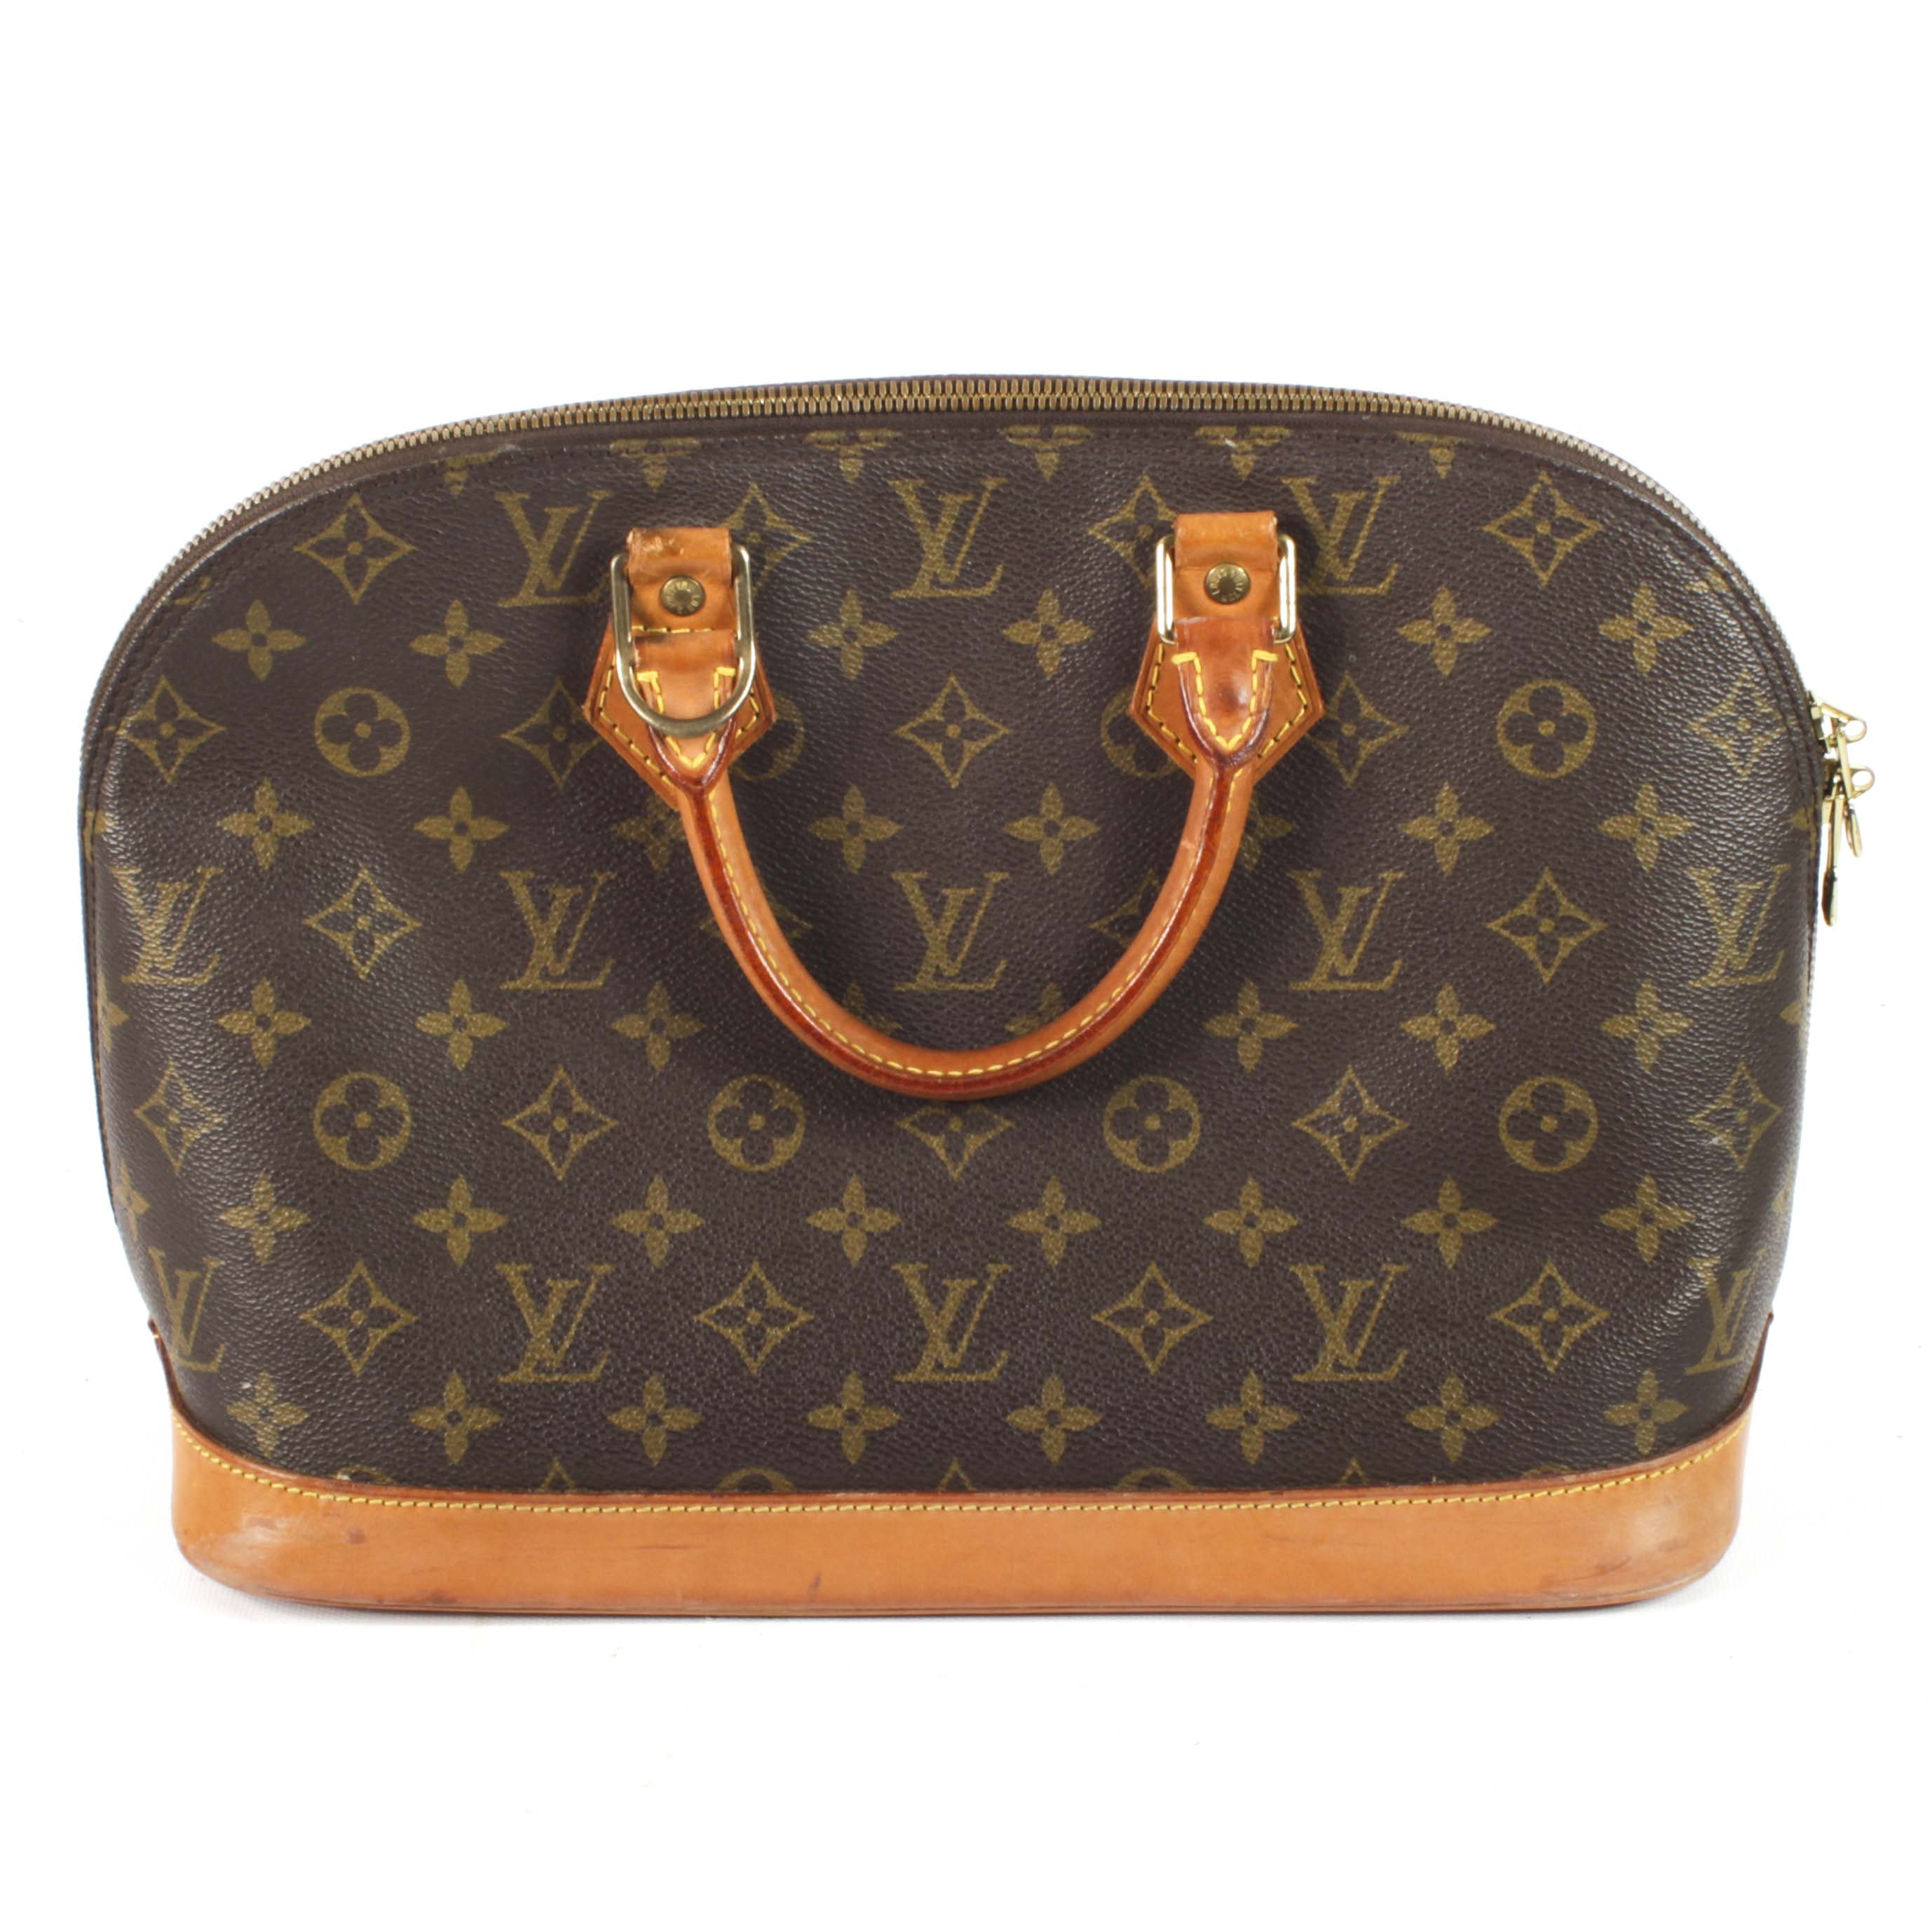 1997 Louis Vuitton Monogram Canvas Handbag